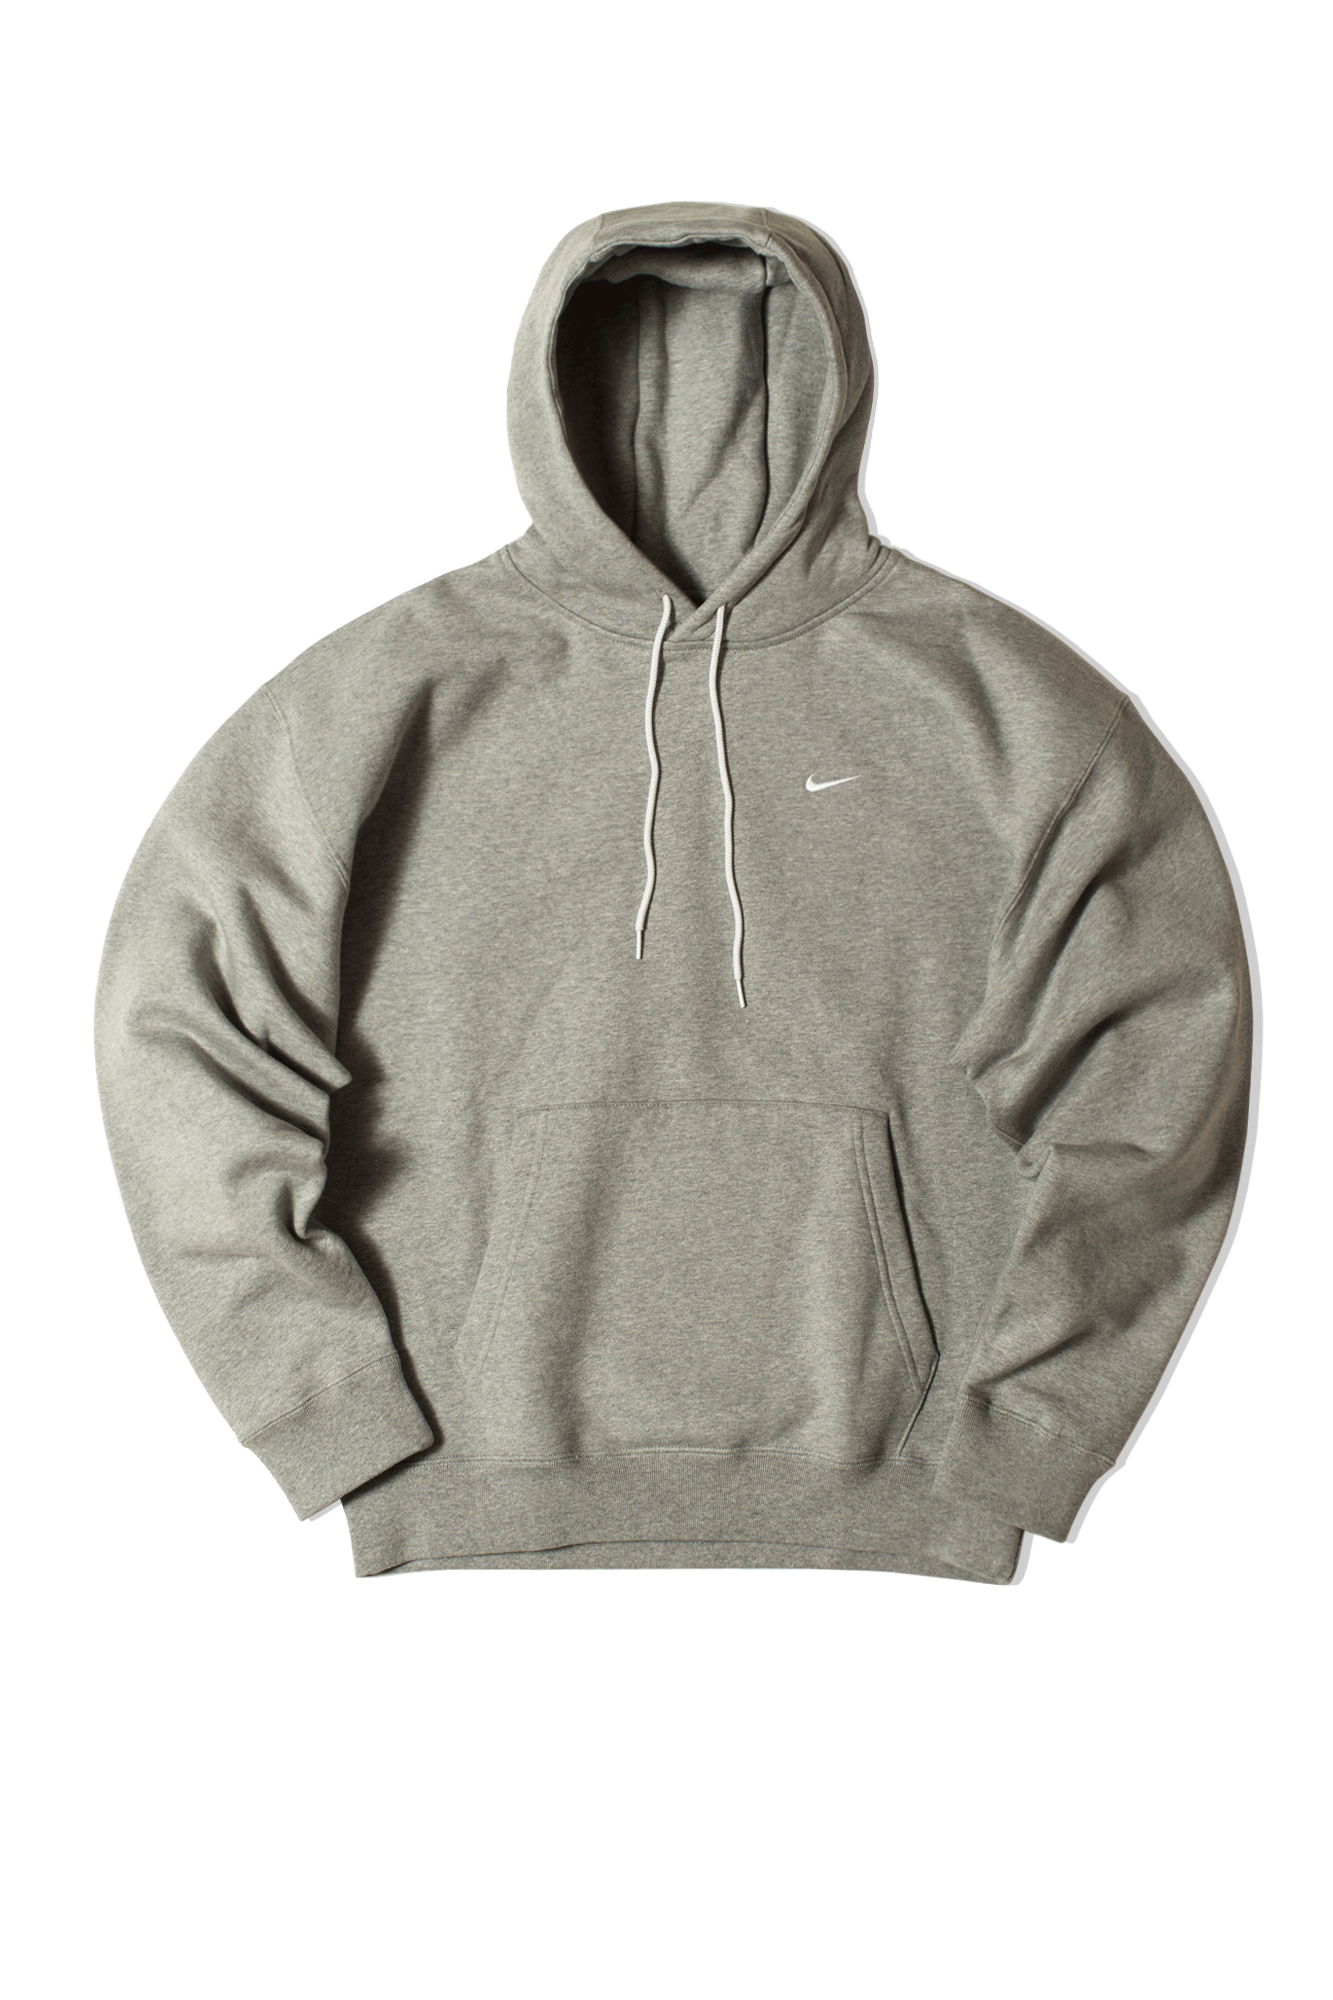 Nike Hooded sweatshirts M NRG SoloSwoosh Fleece Hooded Sweatshirt Grey CV0552-#000#063#S - One Block Down